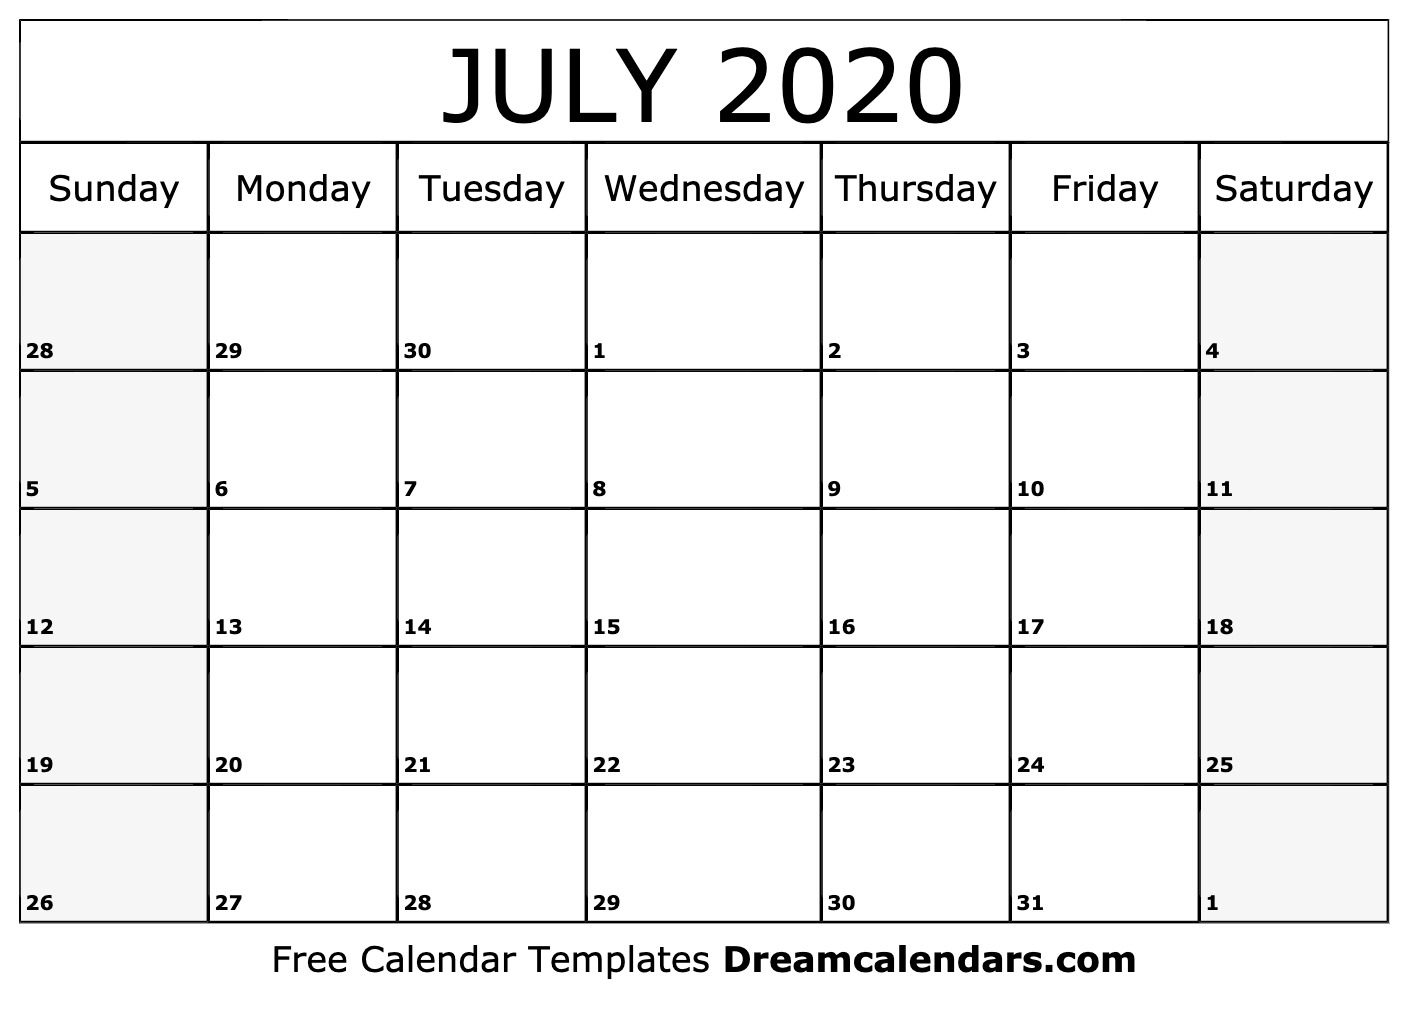 Printable July 2020 Calendar - Ko-Fi ❤️ Where Creators Get